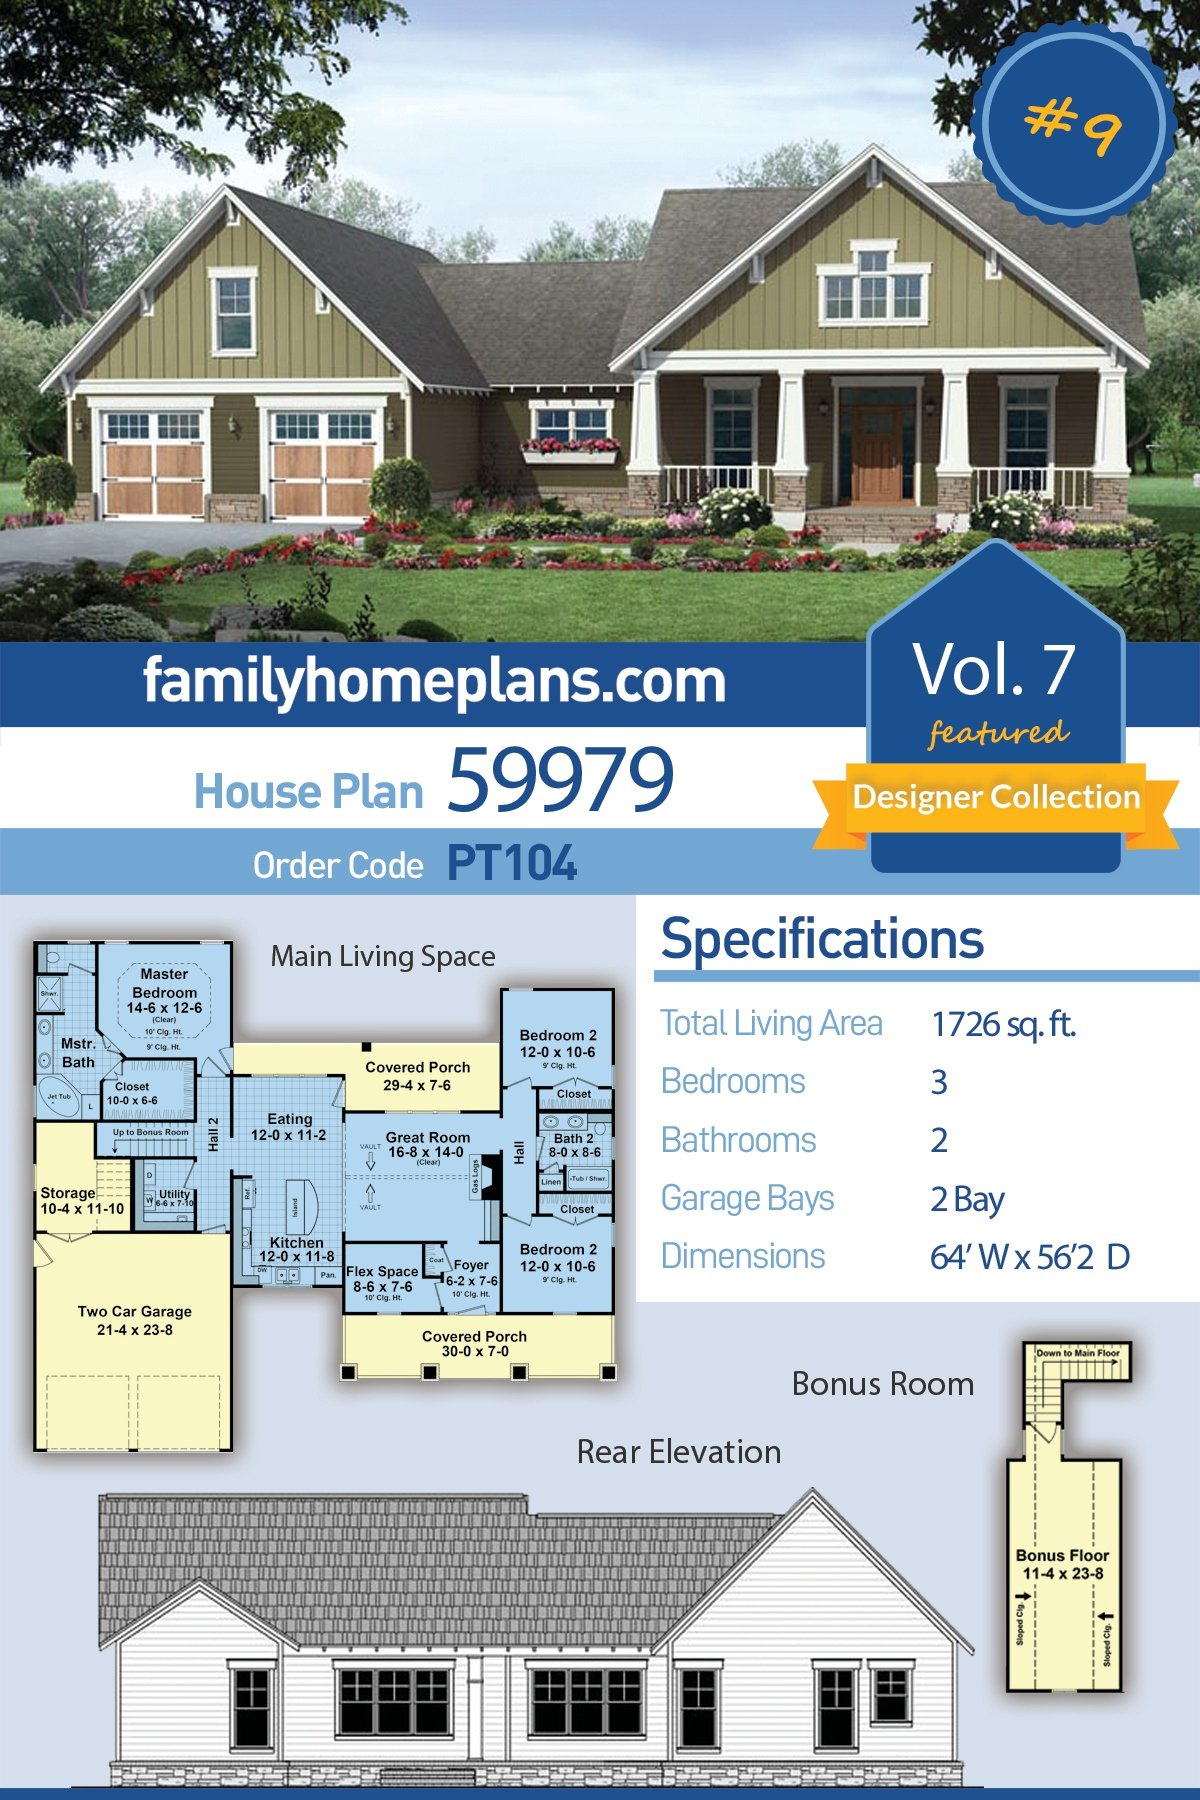 Country, Craftsman, Traditional House Plan 59979 with 3 Beds, 2 Baths, 2 Car Garage